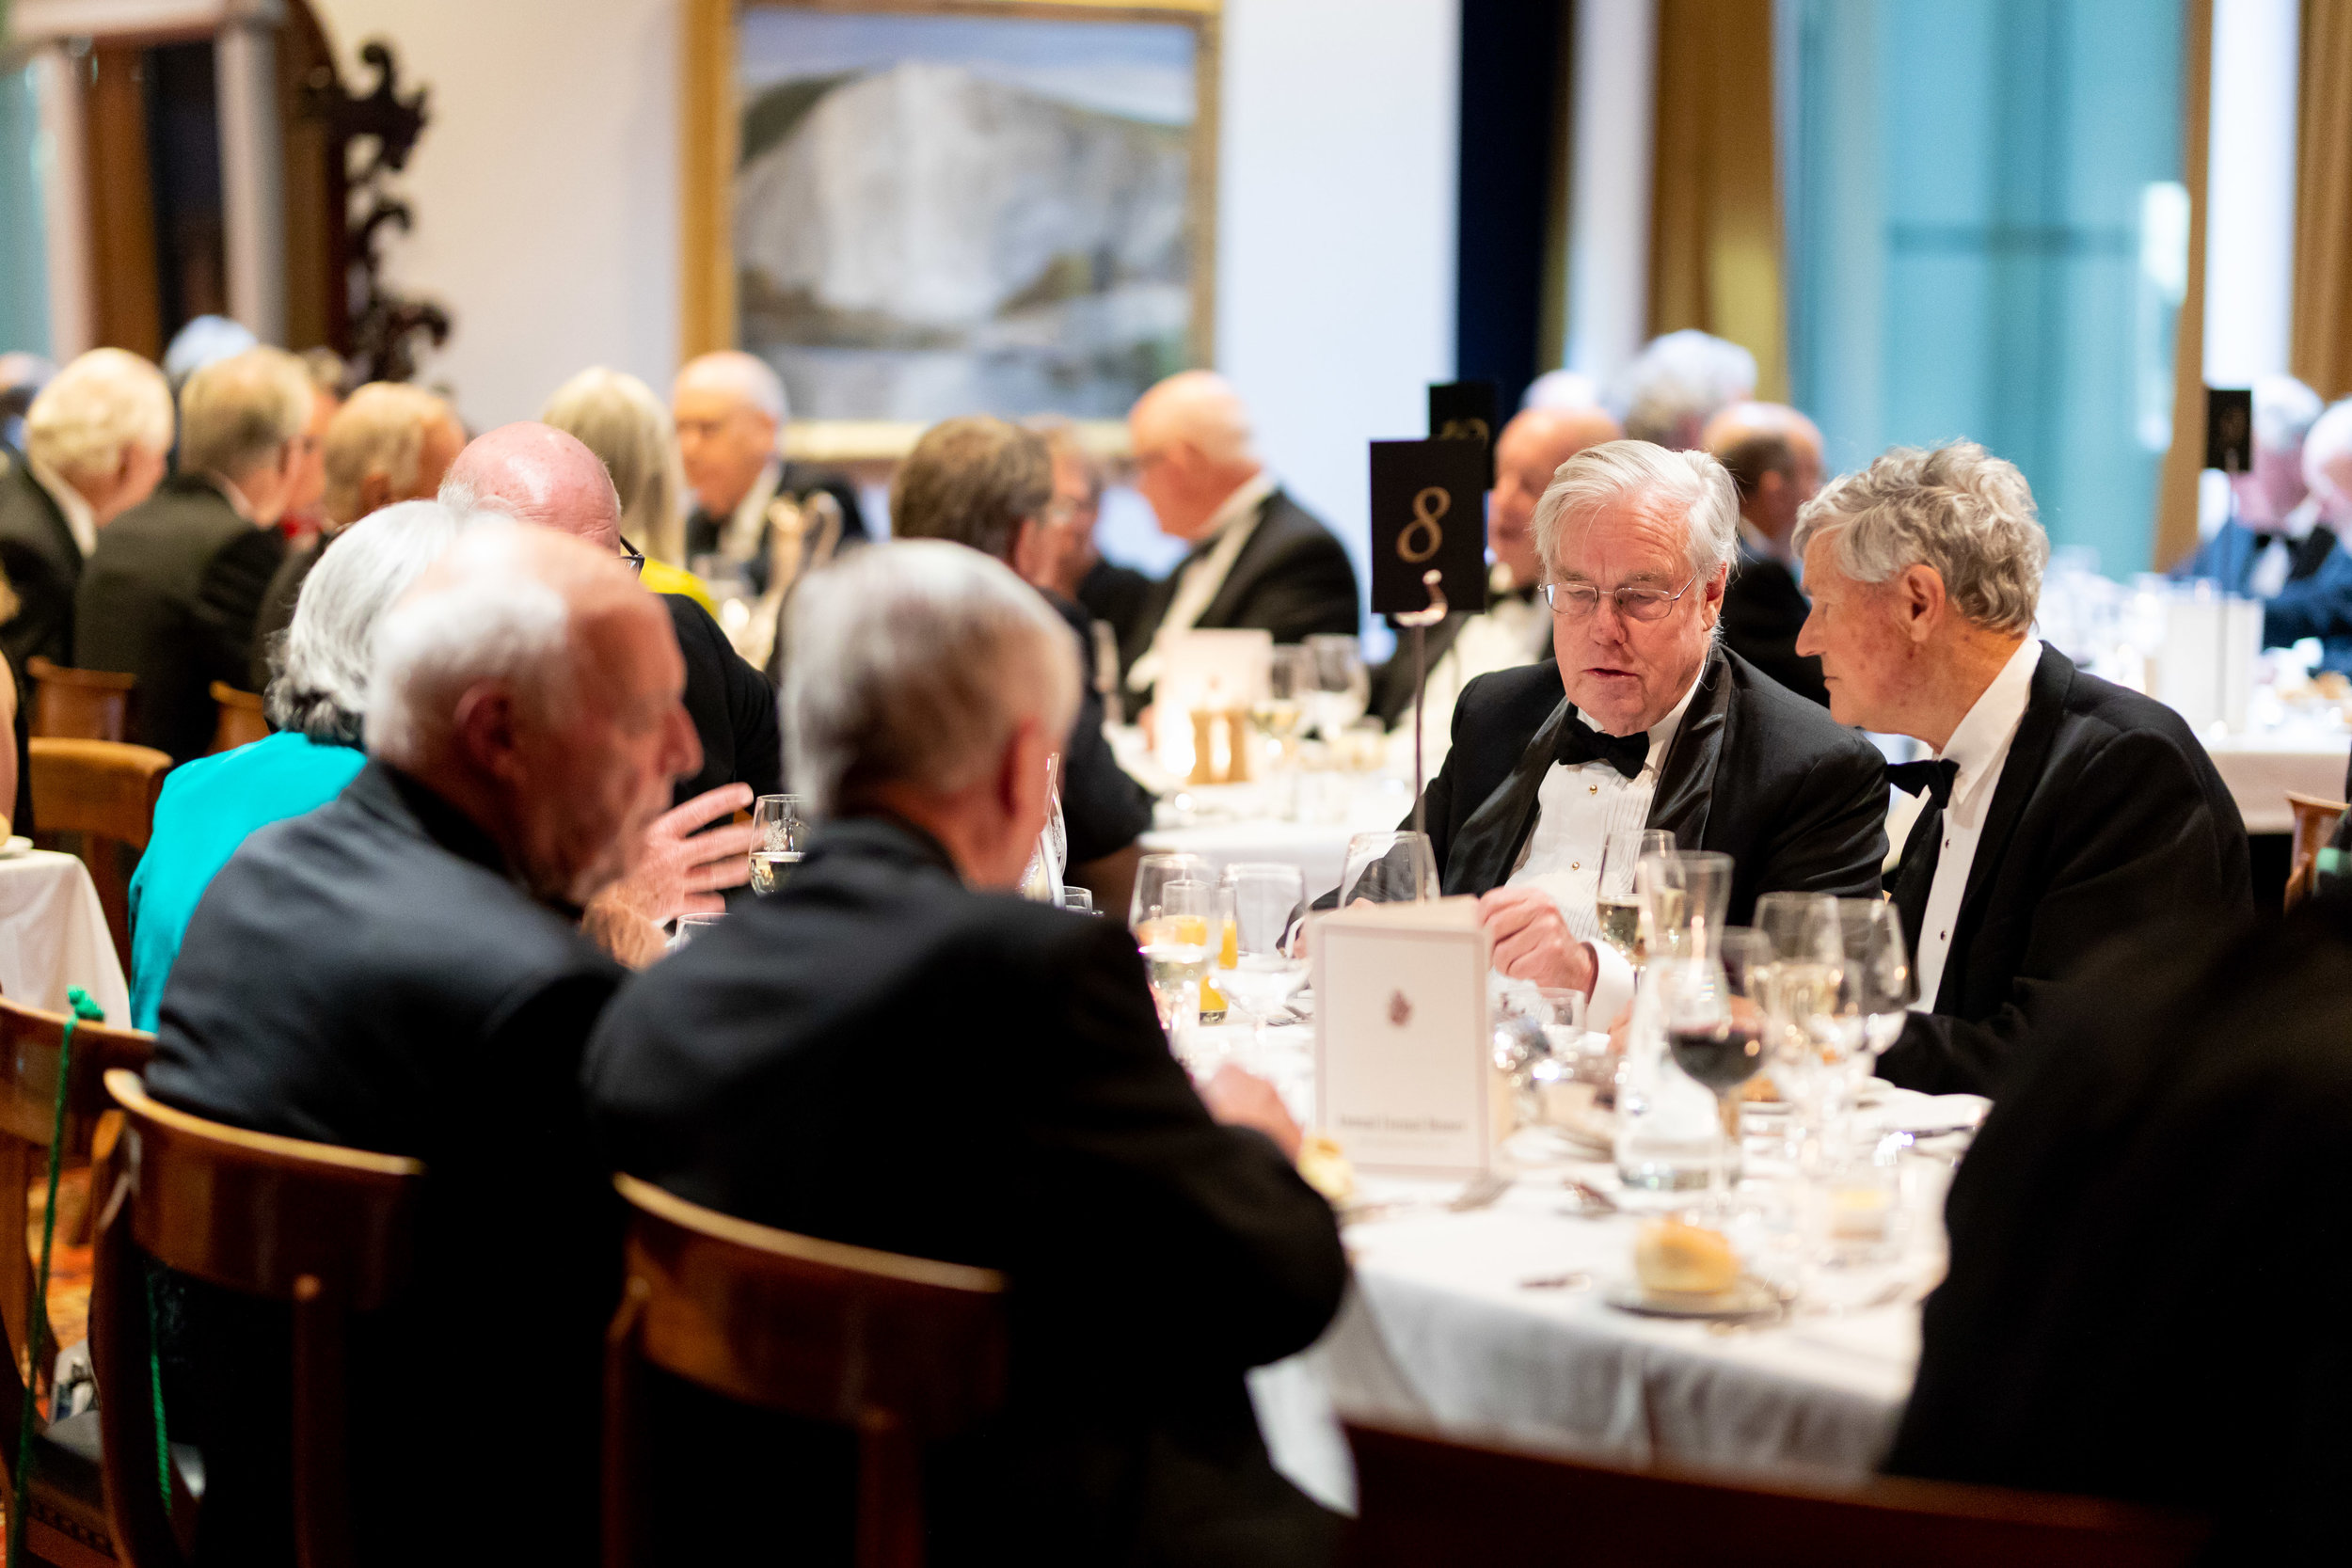 ANNUAL MEMBERS ONLY DINNER, WITH JUSTICE STEPHEN KÓS, 23 AUGUST 2018